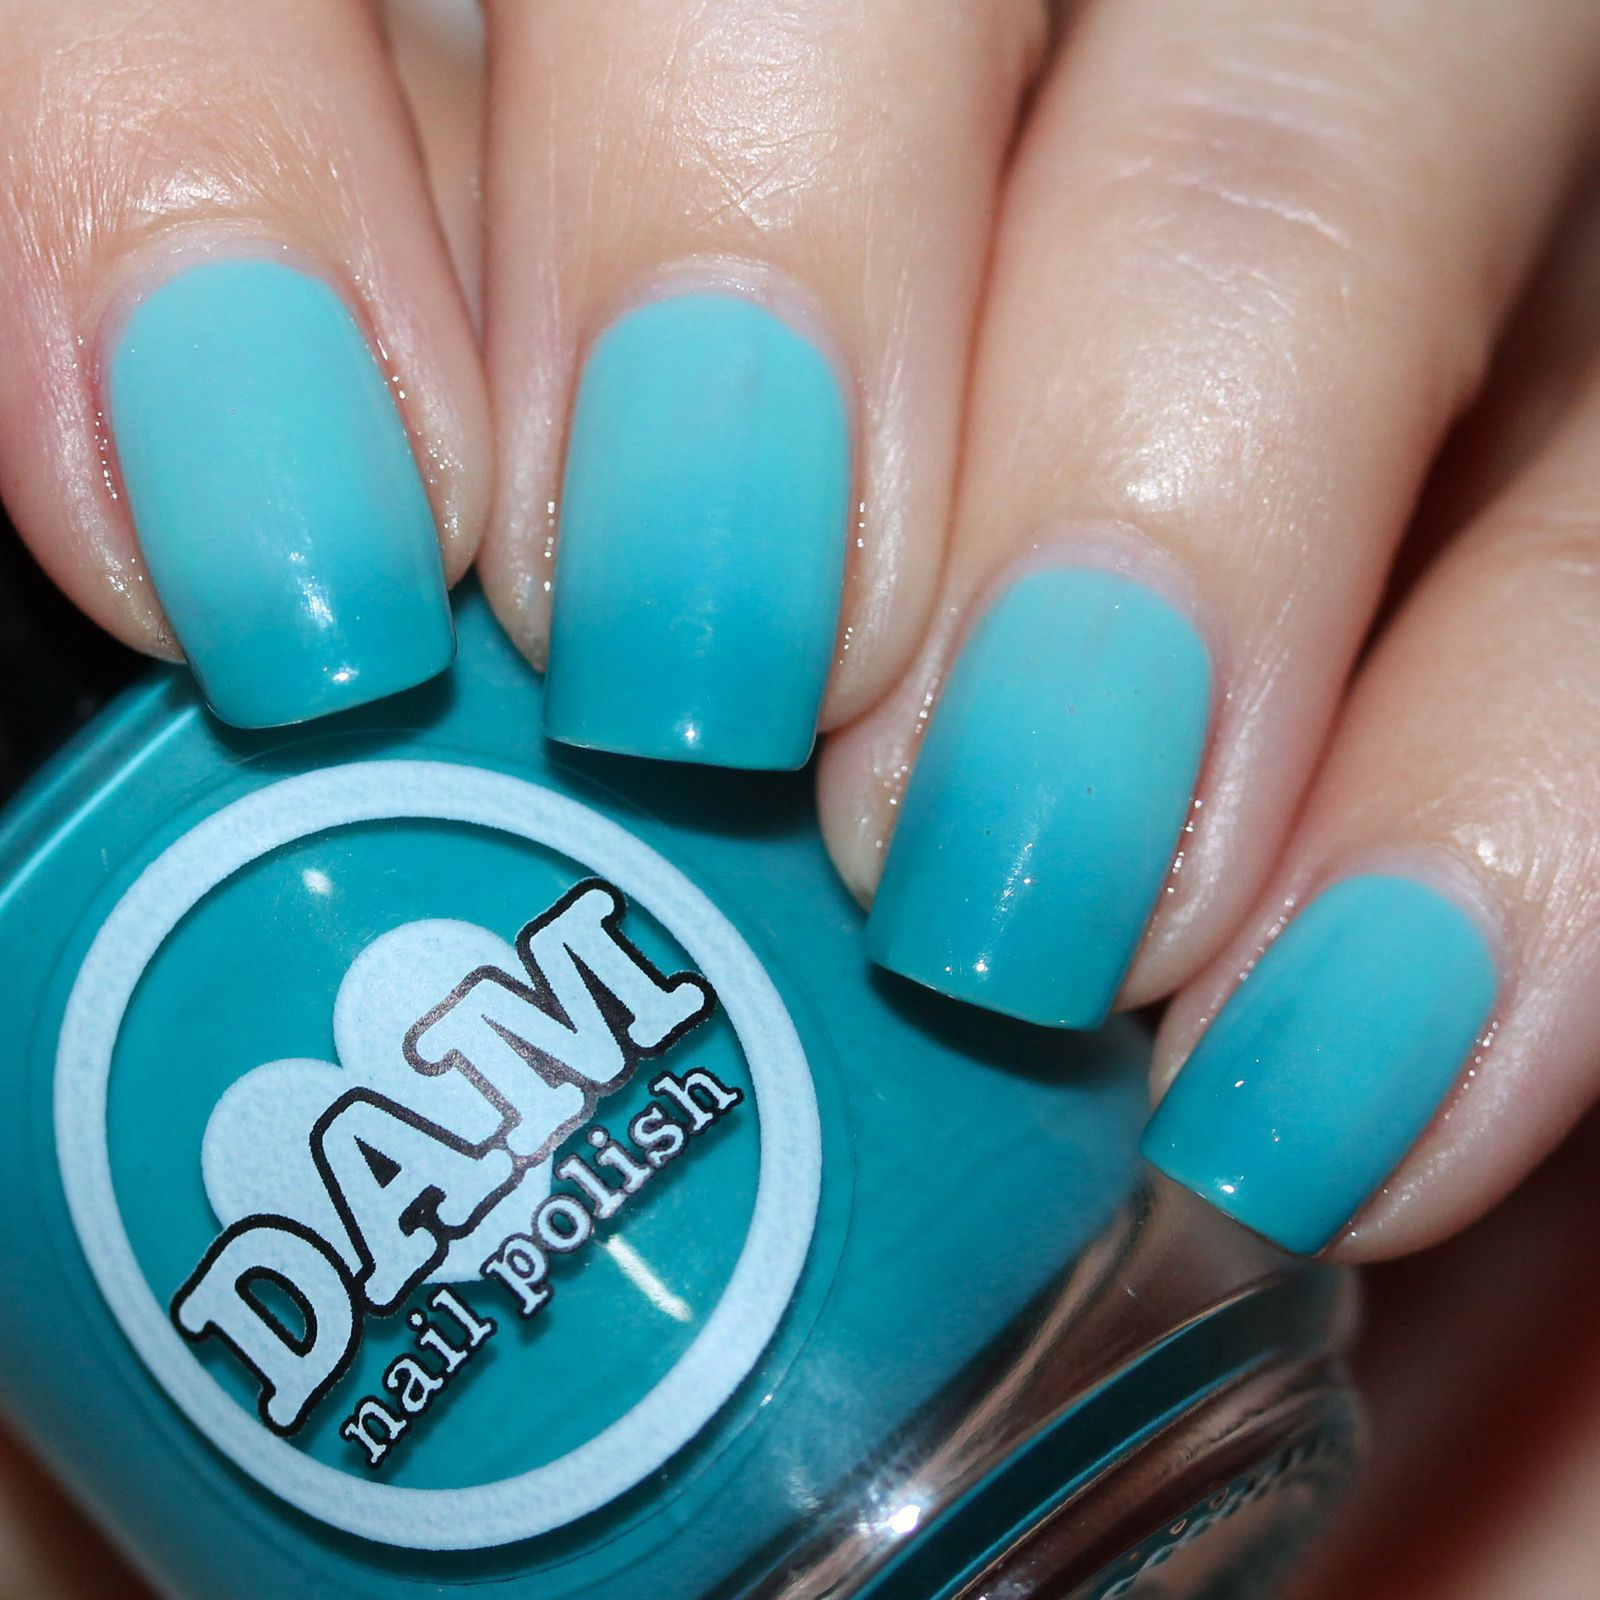 Duri Rejuvacote / DAM Nail Polish Teal Next Time / HK Girl Top Coat